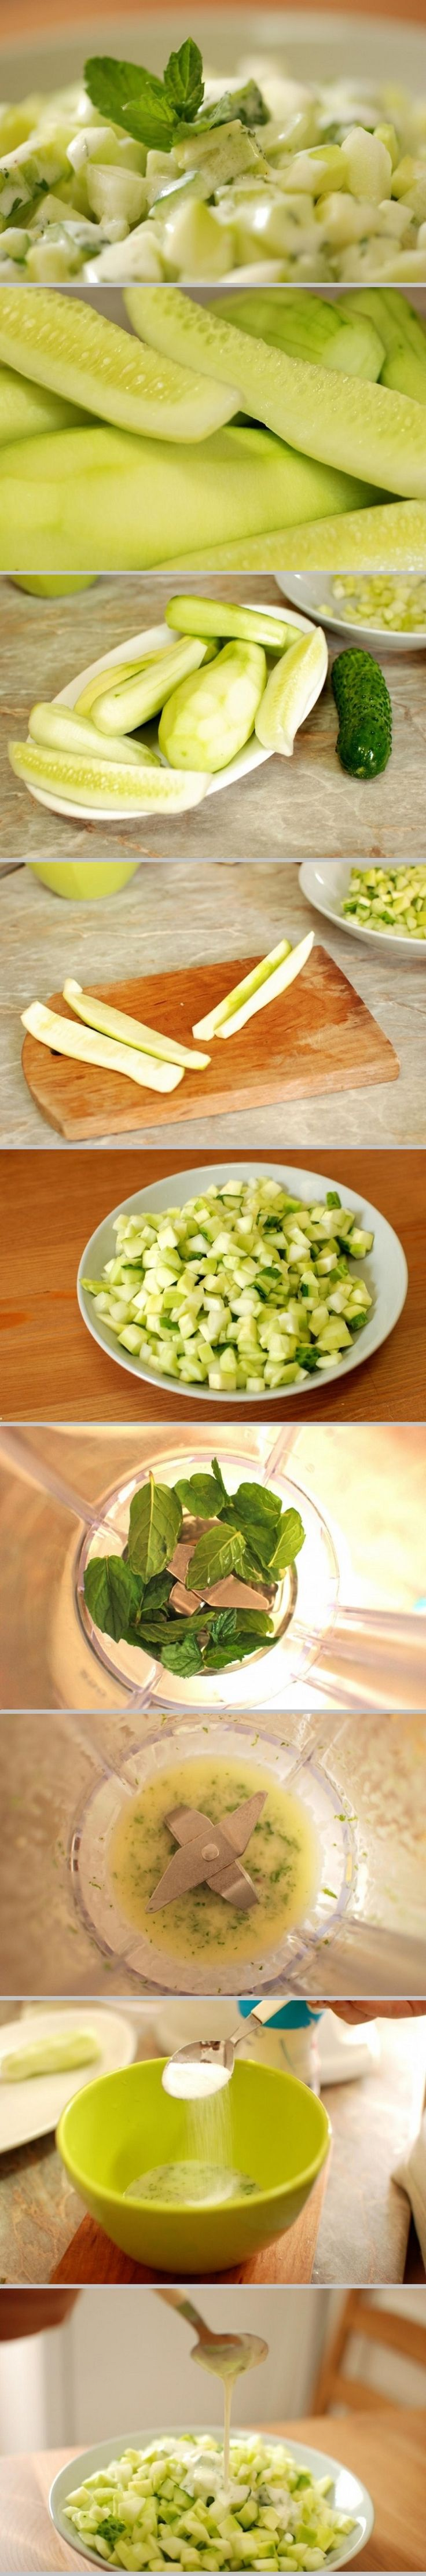 Cucumber salad with yogurt sauce | Salads | Pinterest